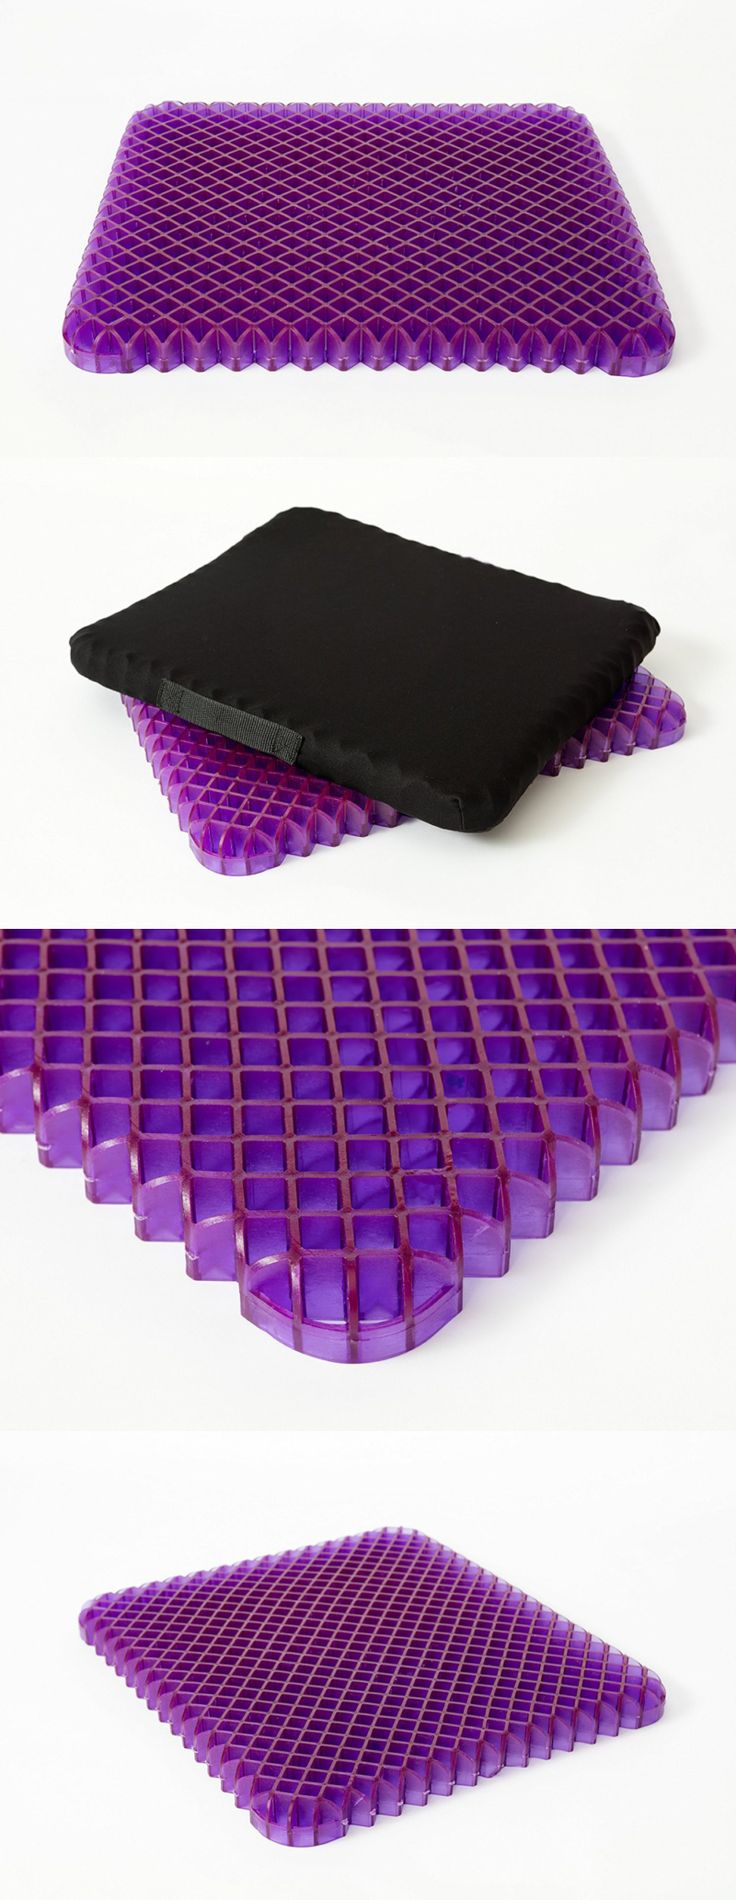 Garden Kneelers Pads and Seats 75669: The Simply Purple No-Pressure Seat Cushion -> BUY IT NOW ONLY: $67.58 on eBay!